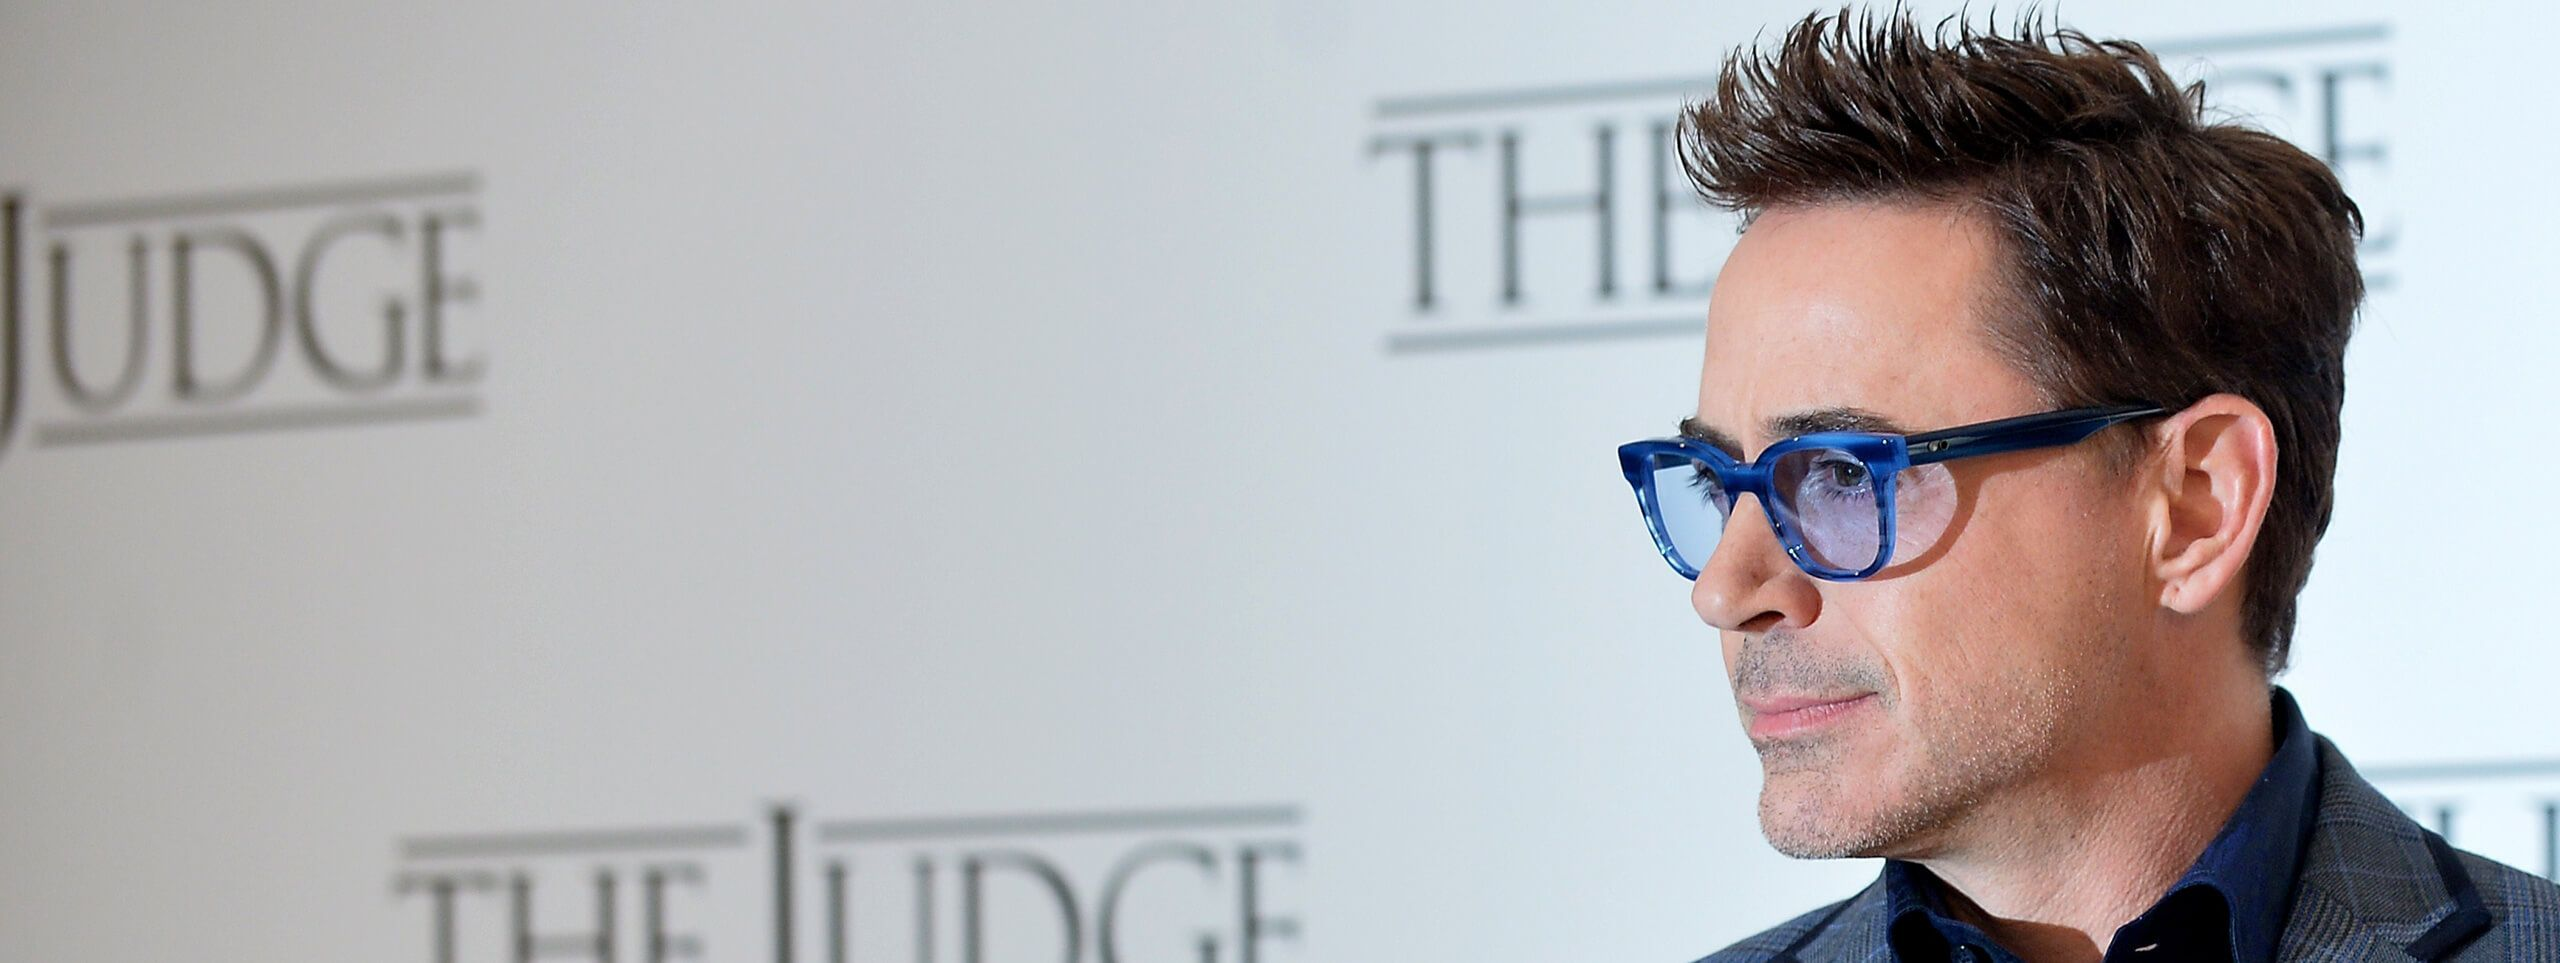 Robert Downy Jr wearing glasses and a fohawk